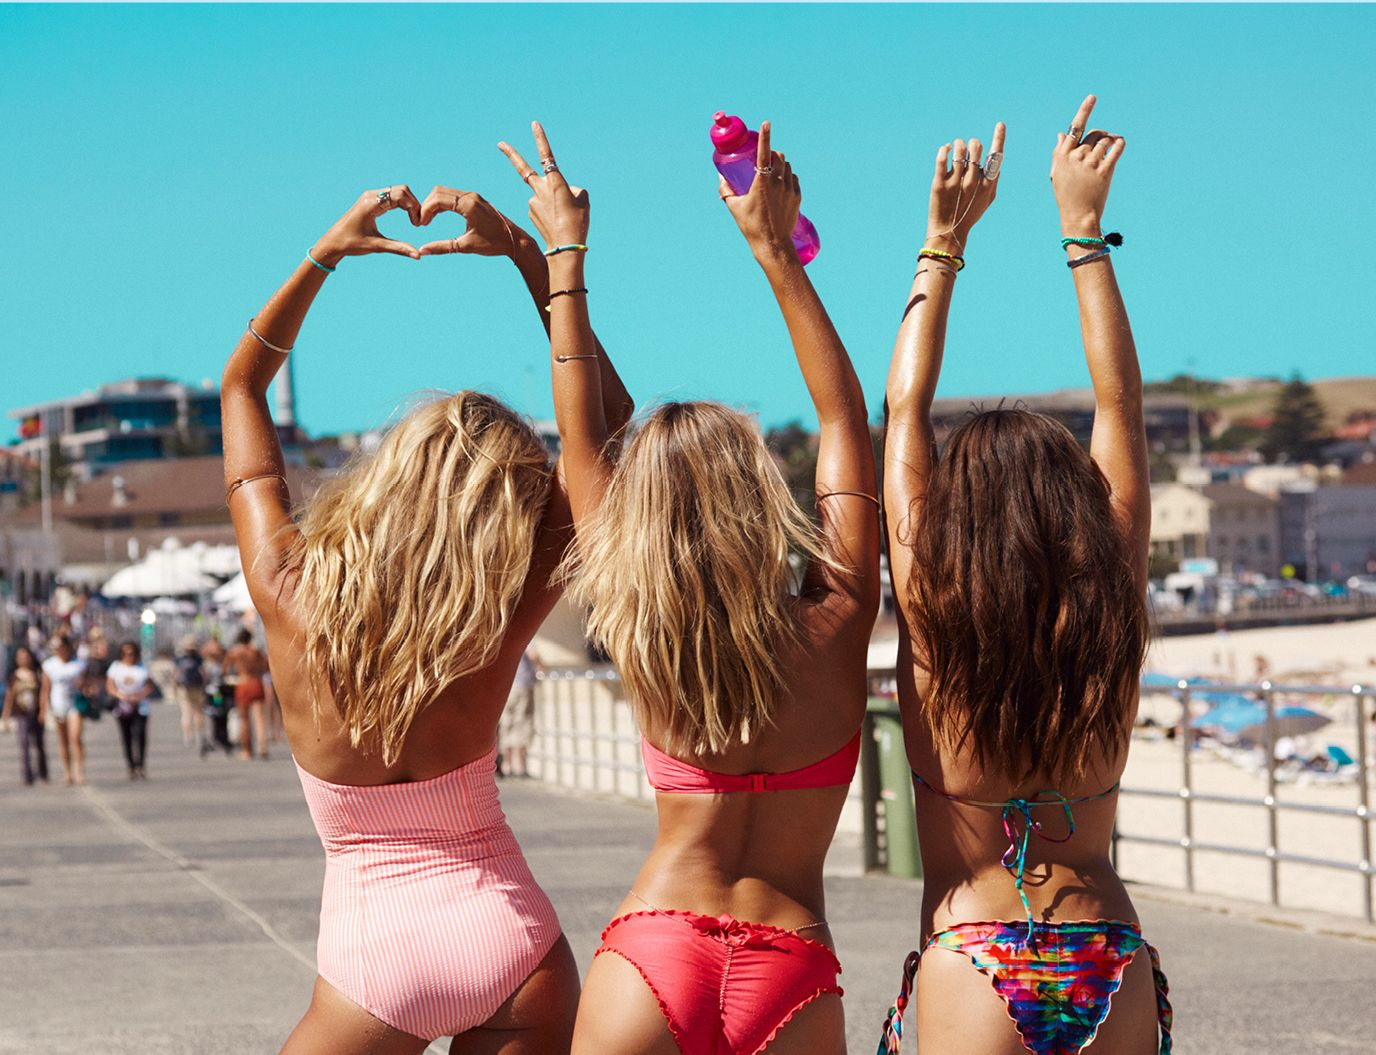 For a limited time get 30% off with Bondi Sands!